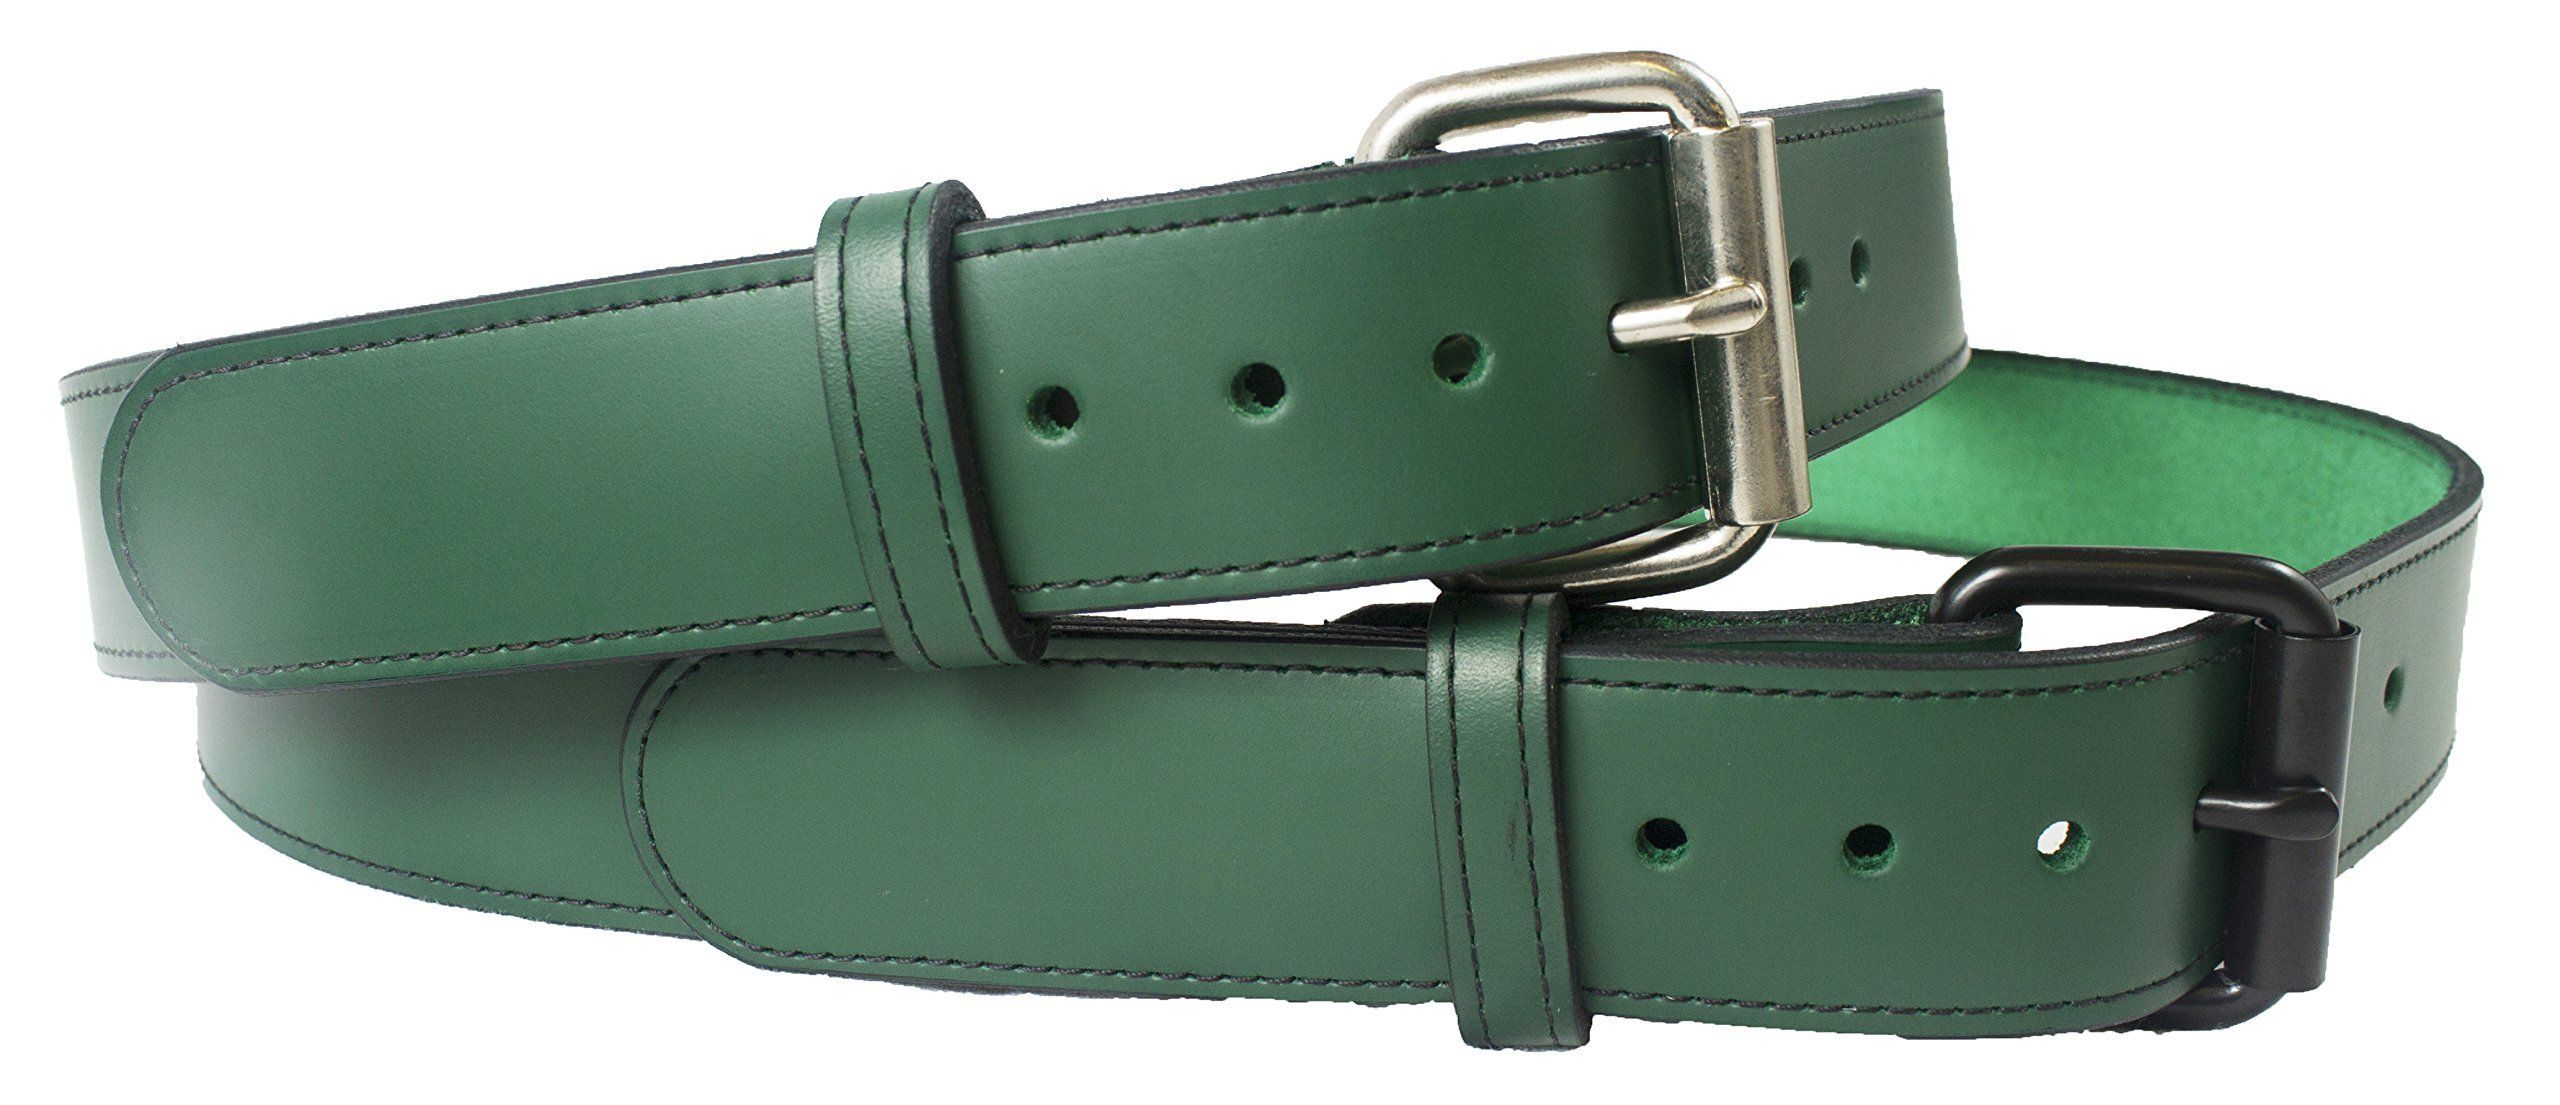 "Handmade Leather Belt 1 1/2"" Genuine Green Leather Belt Changable Buckle, Leather Dress Belt, Father's Day, Big and Tall, Personalized Free, Proudly Made in USA"